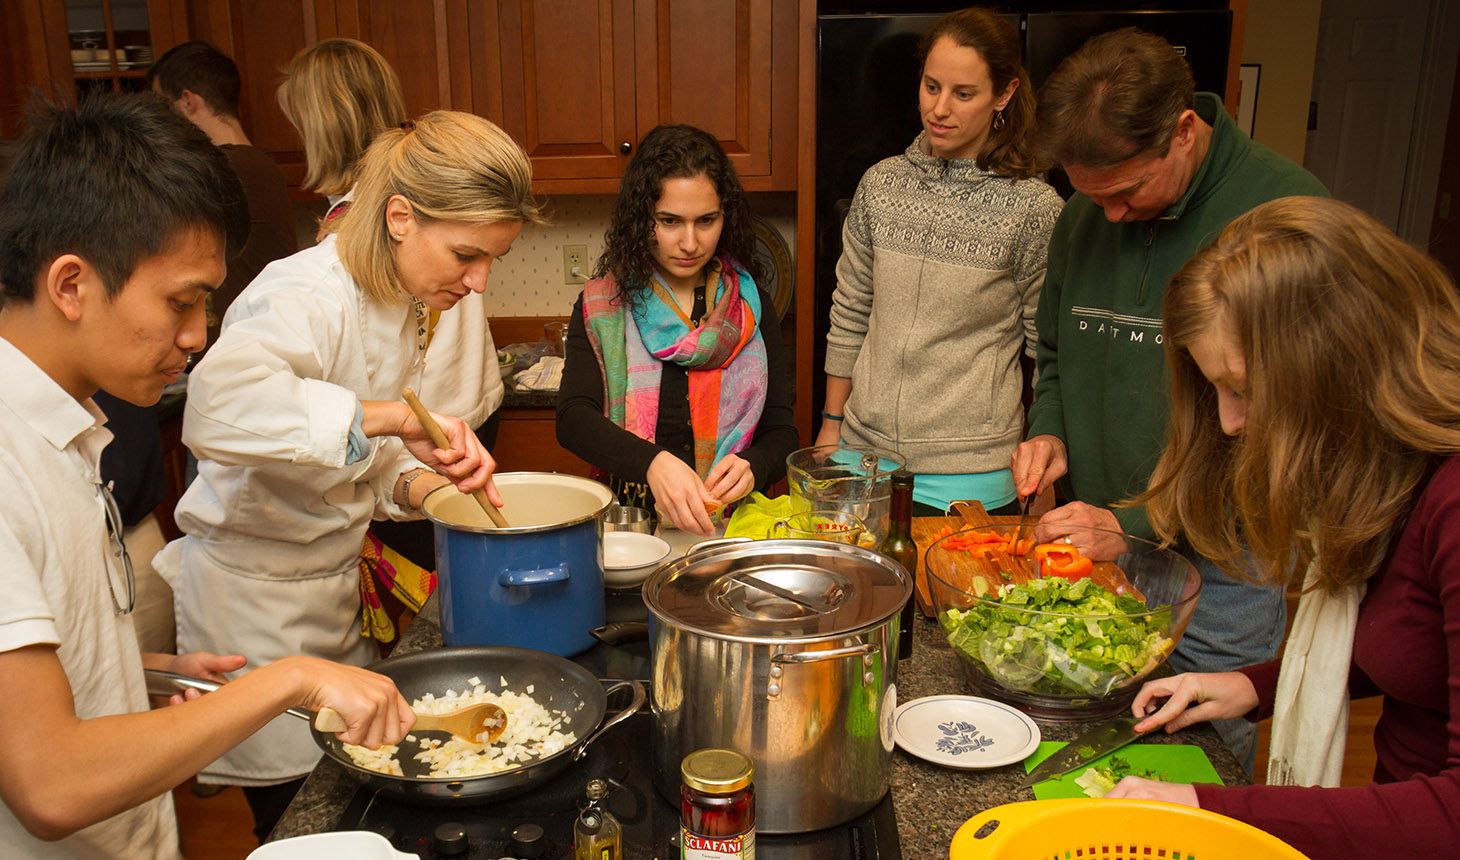 Julia Nordgren ('99) led an elective that teaches Geisel medical students how to cook, and how to talk to their patients about different diets. From left to right, Kendrew Wong ('17), Julia Nordgren, Tara Kedia ('17), Caitlin Hopeman ('17), Richard Simons, and April Venn ('17). Photo by Lars Blackmore.